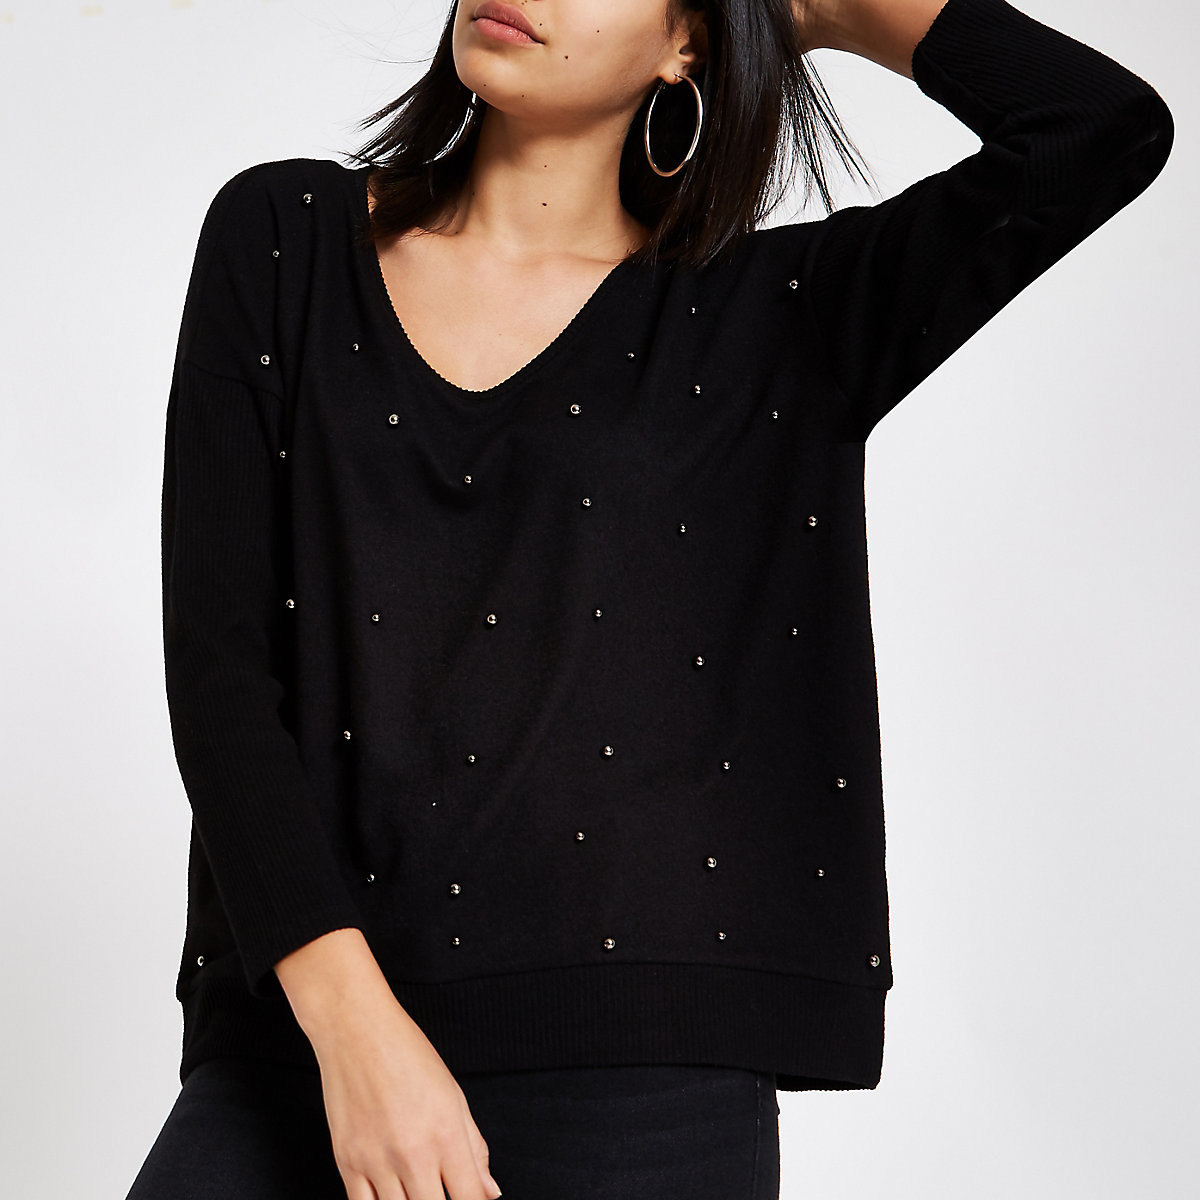 Black pearl embellished sweater